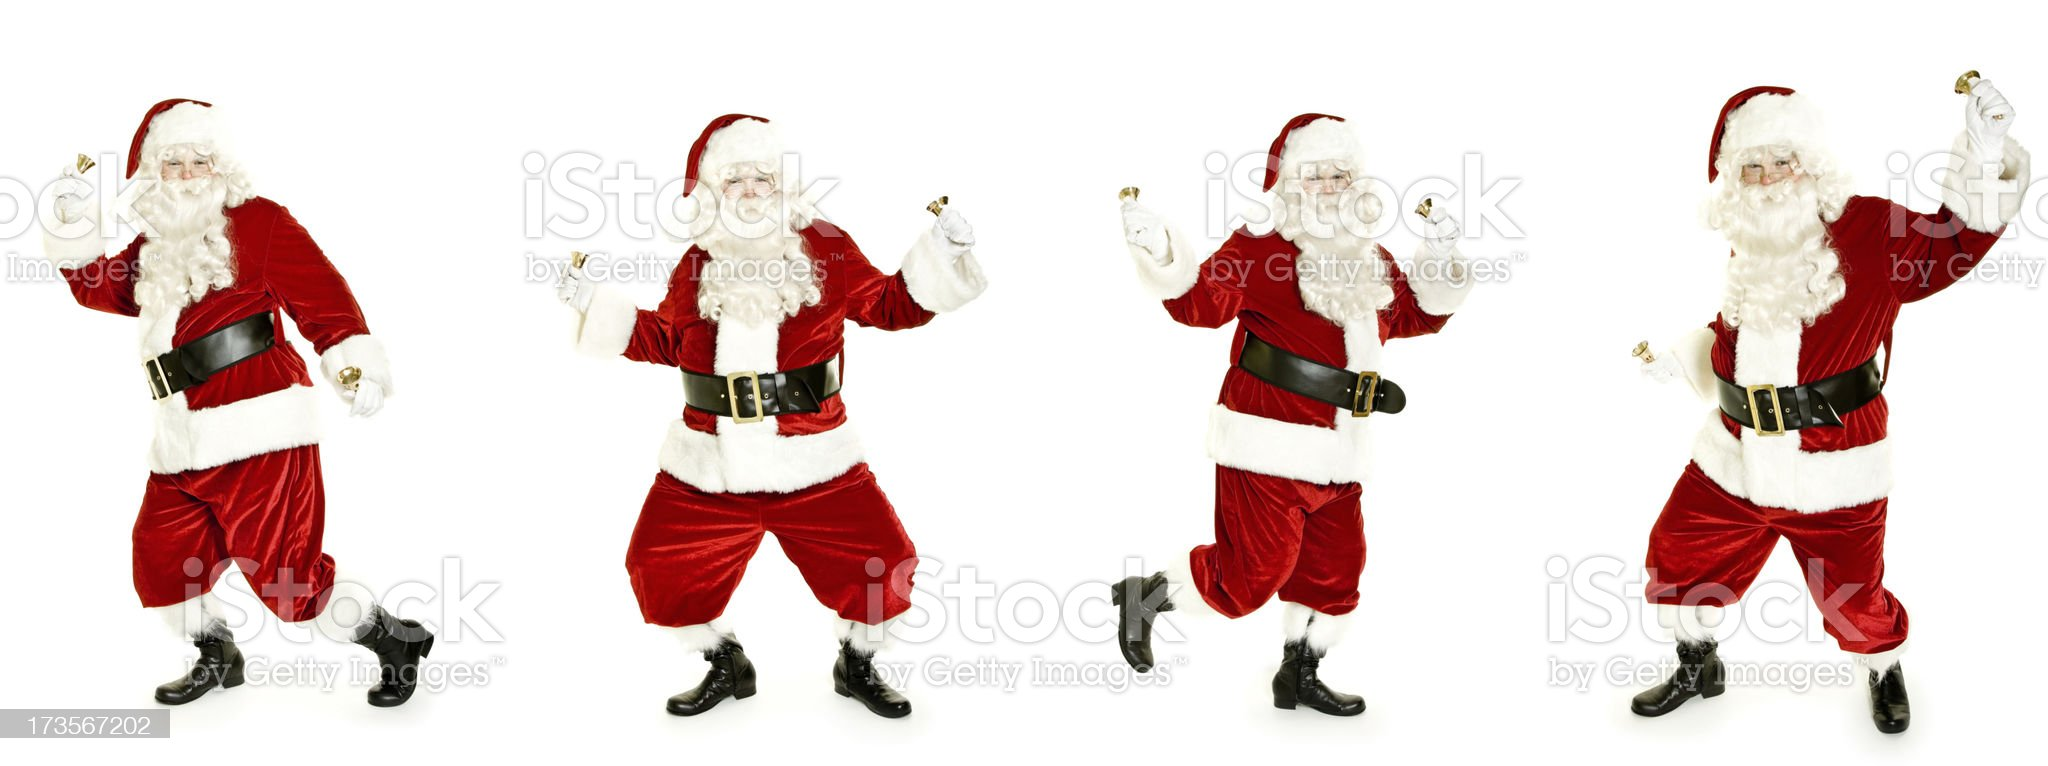 Dancing Santa with bell isolated on white royalty-free stock photo